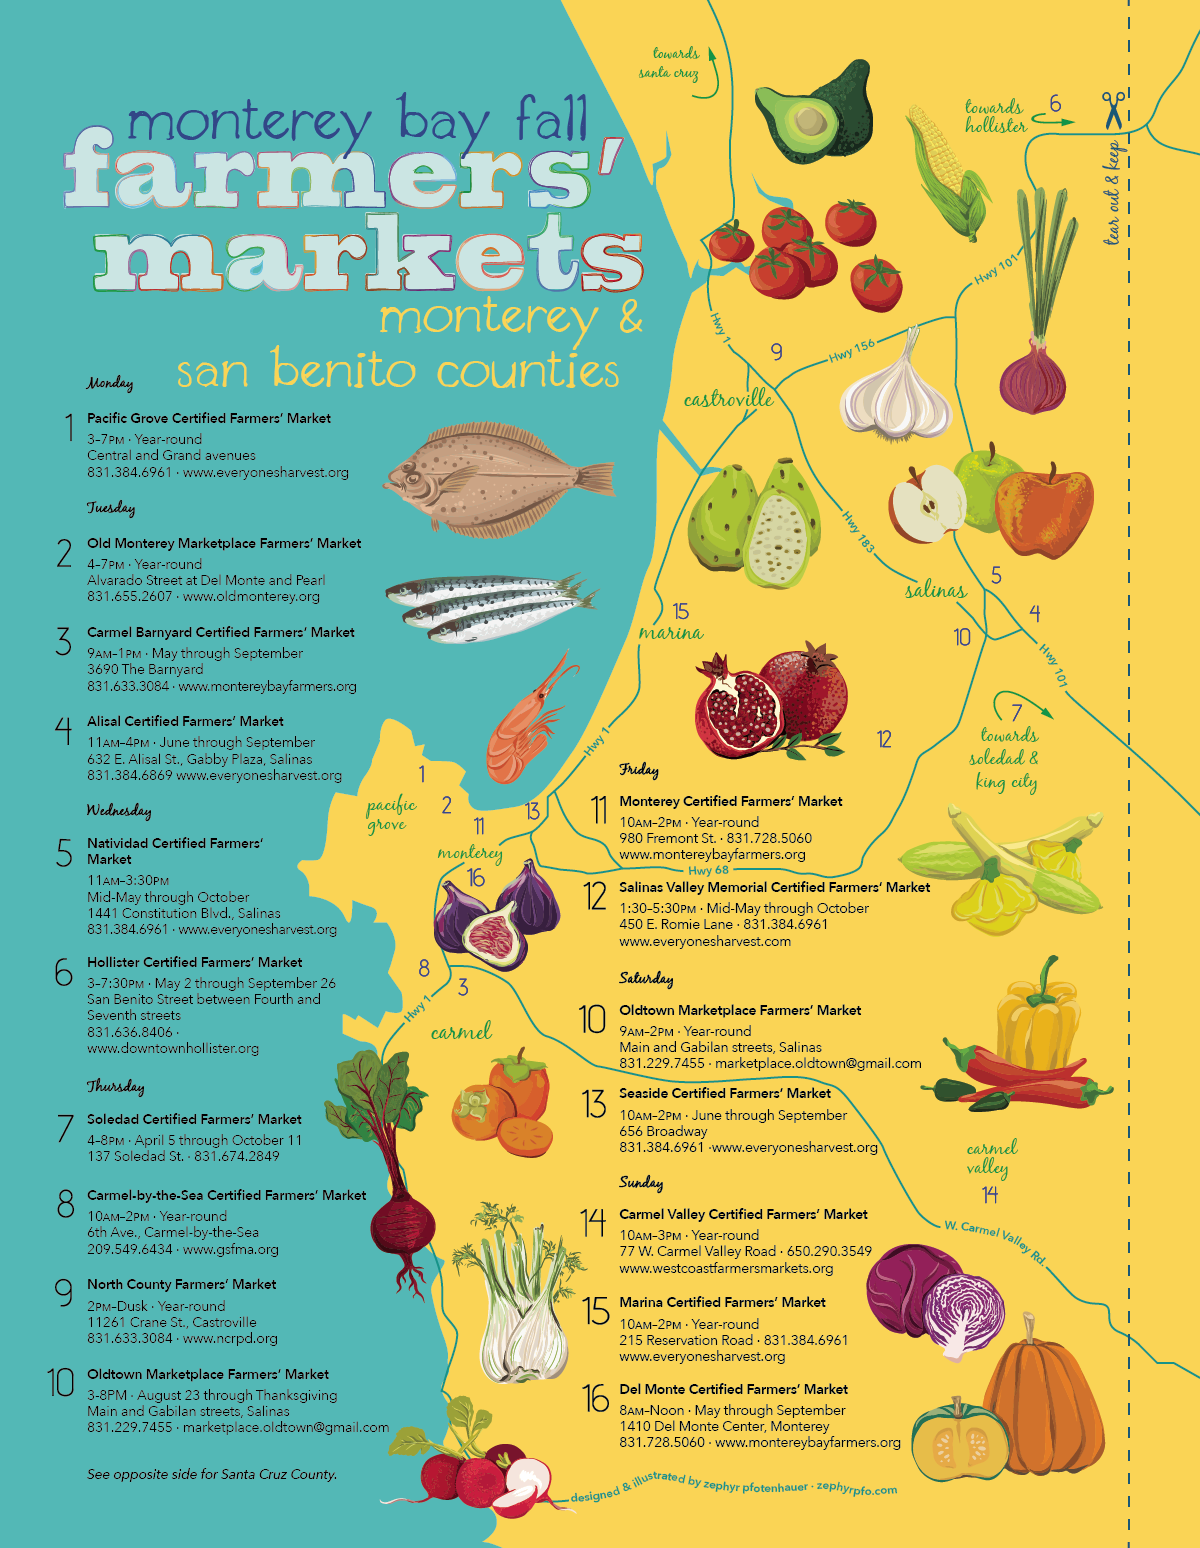 Monterey Bay Farmers' Markets (Fall)